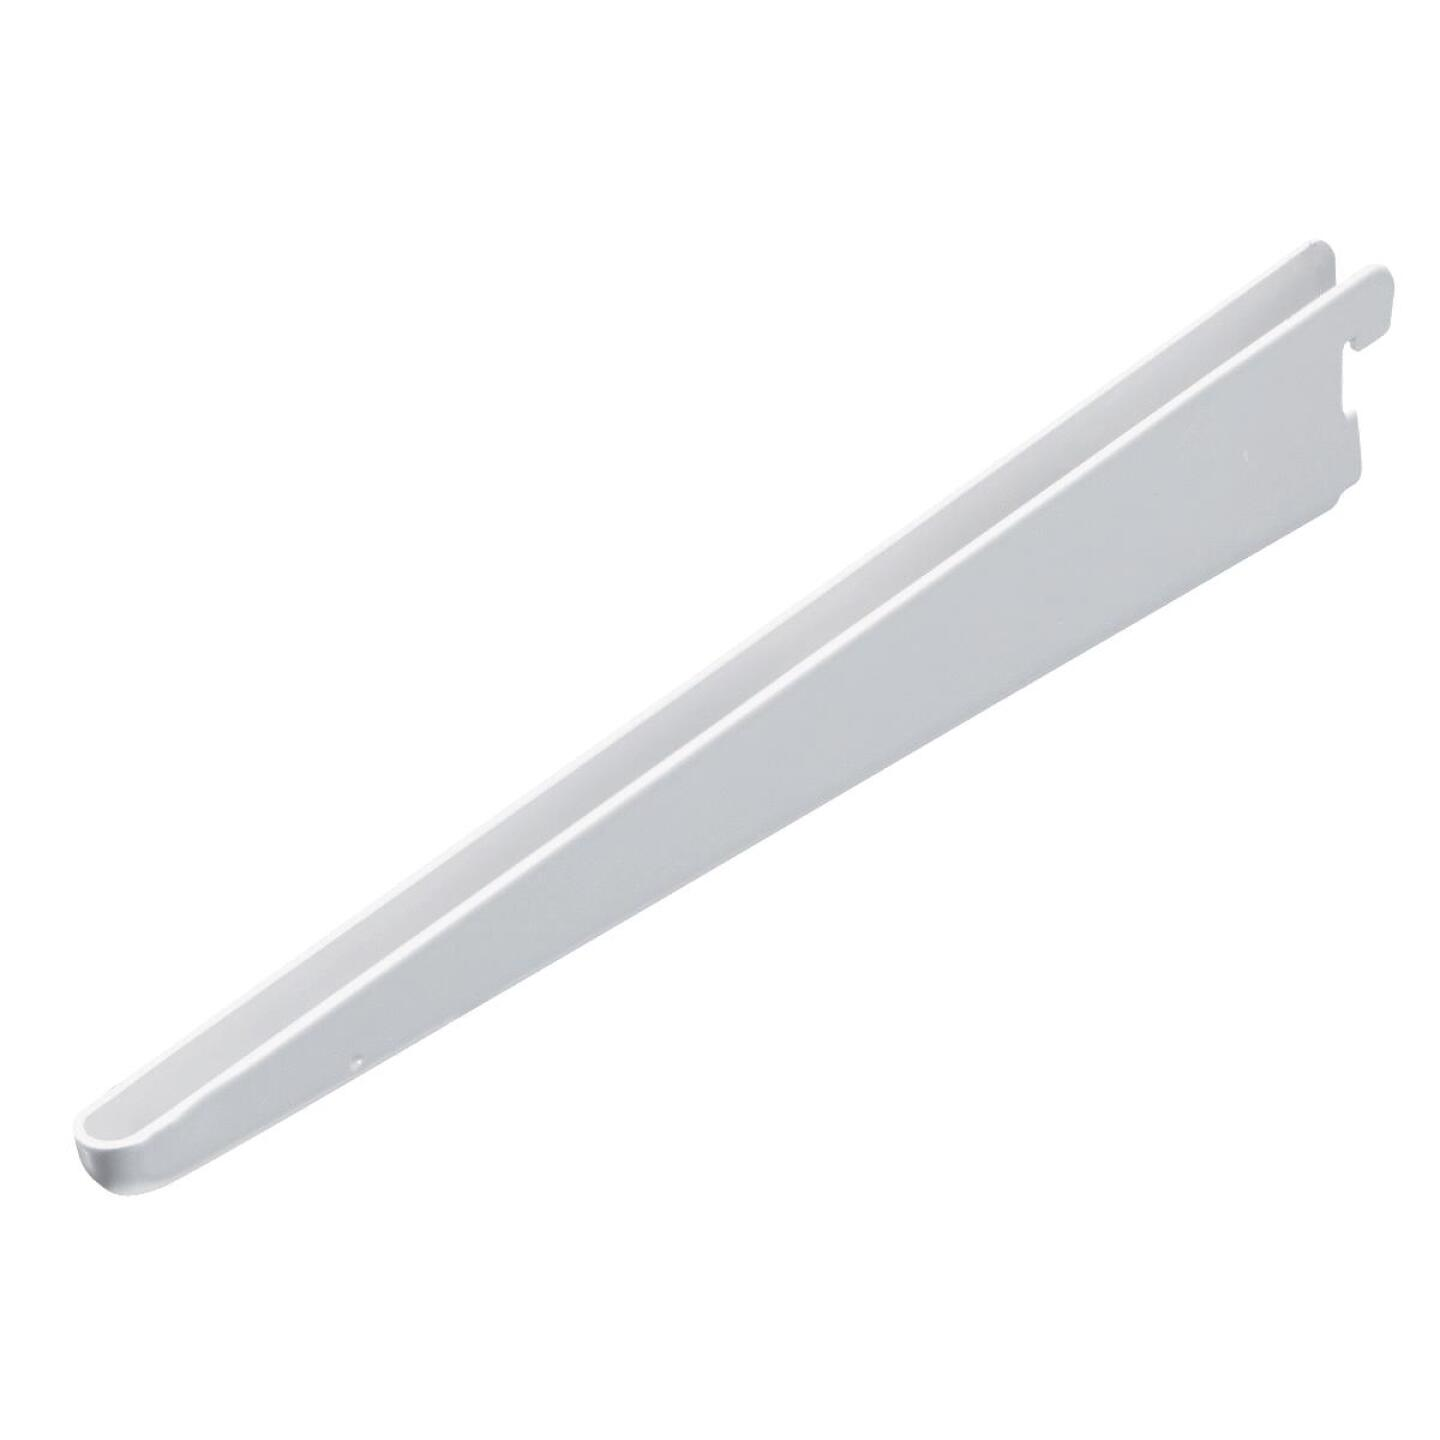 FreedomRail 12-1/2 In. Rod Clip Accessible Shelving Bracket Image 1